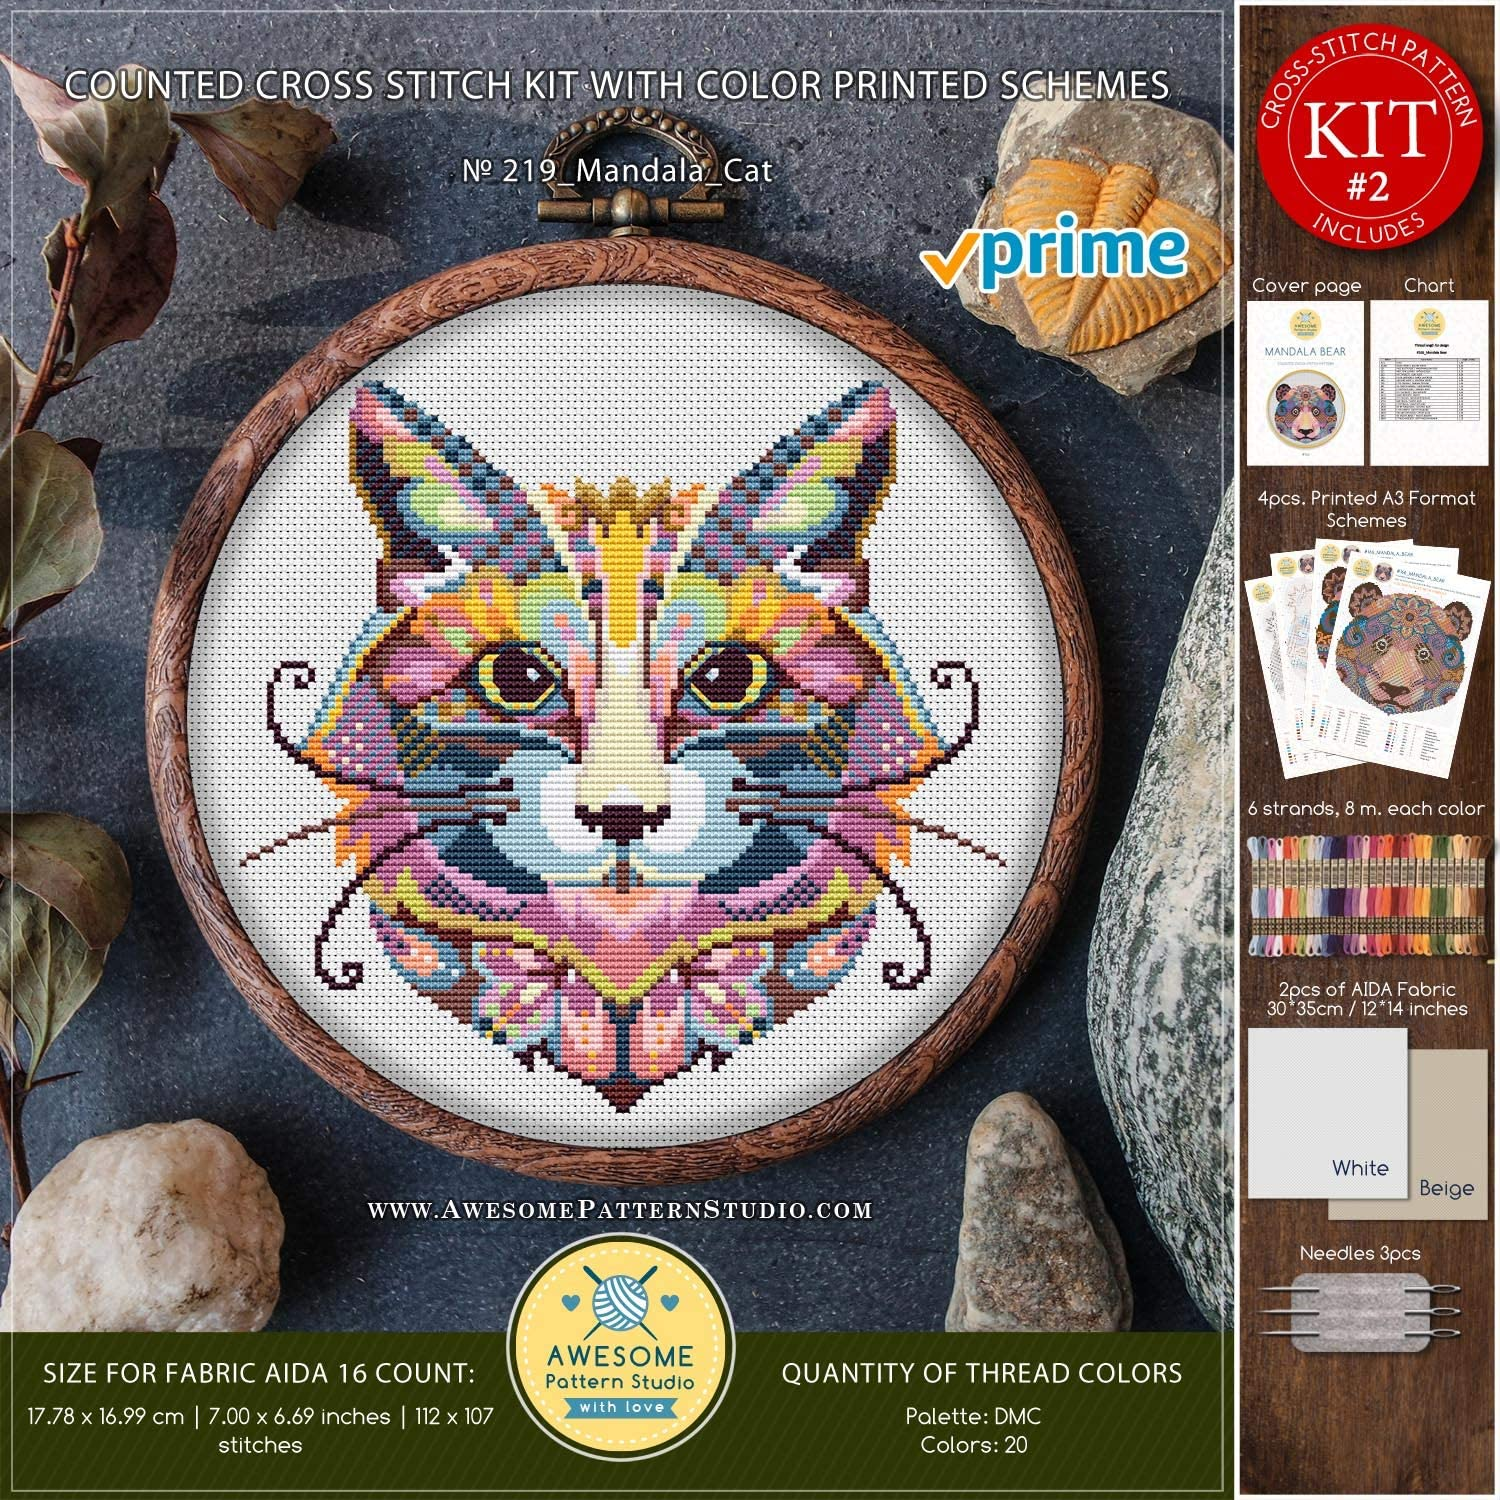 Fabrick and 4 Printed Color Schemes Inside Embroidery Pattern Kit Mandala Cat K219 Counted Cross Stitch KIT#2 Threads Needles